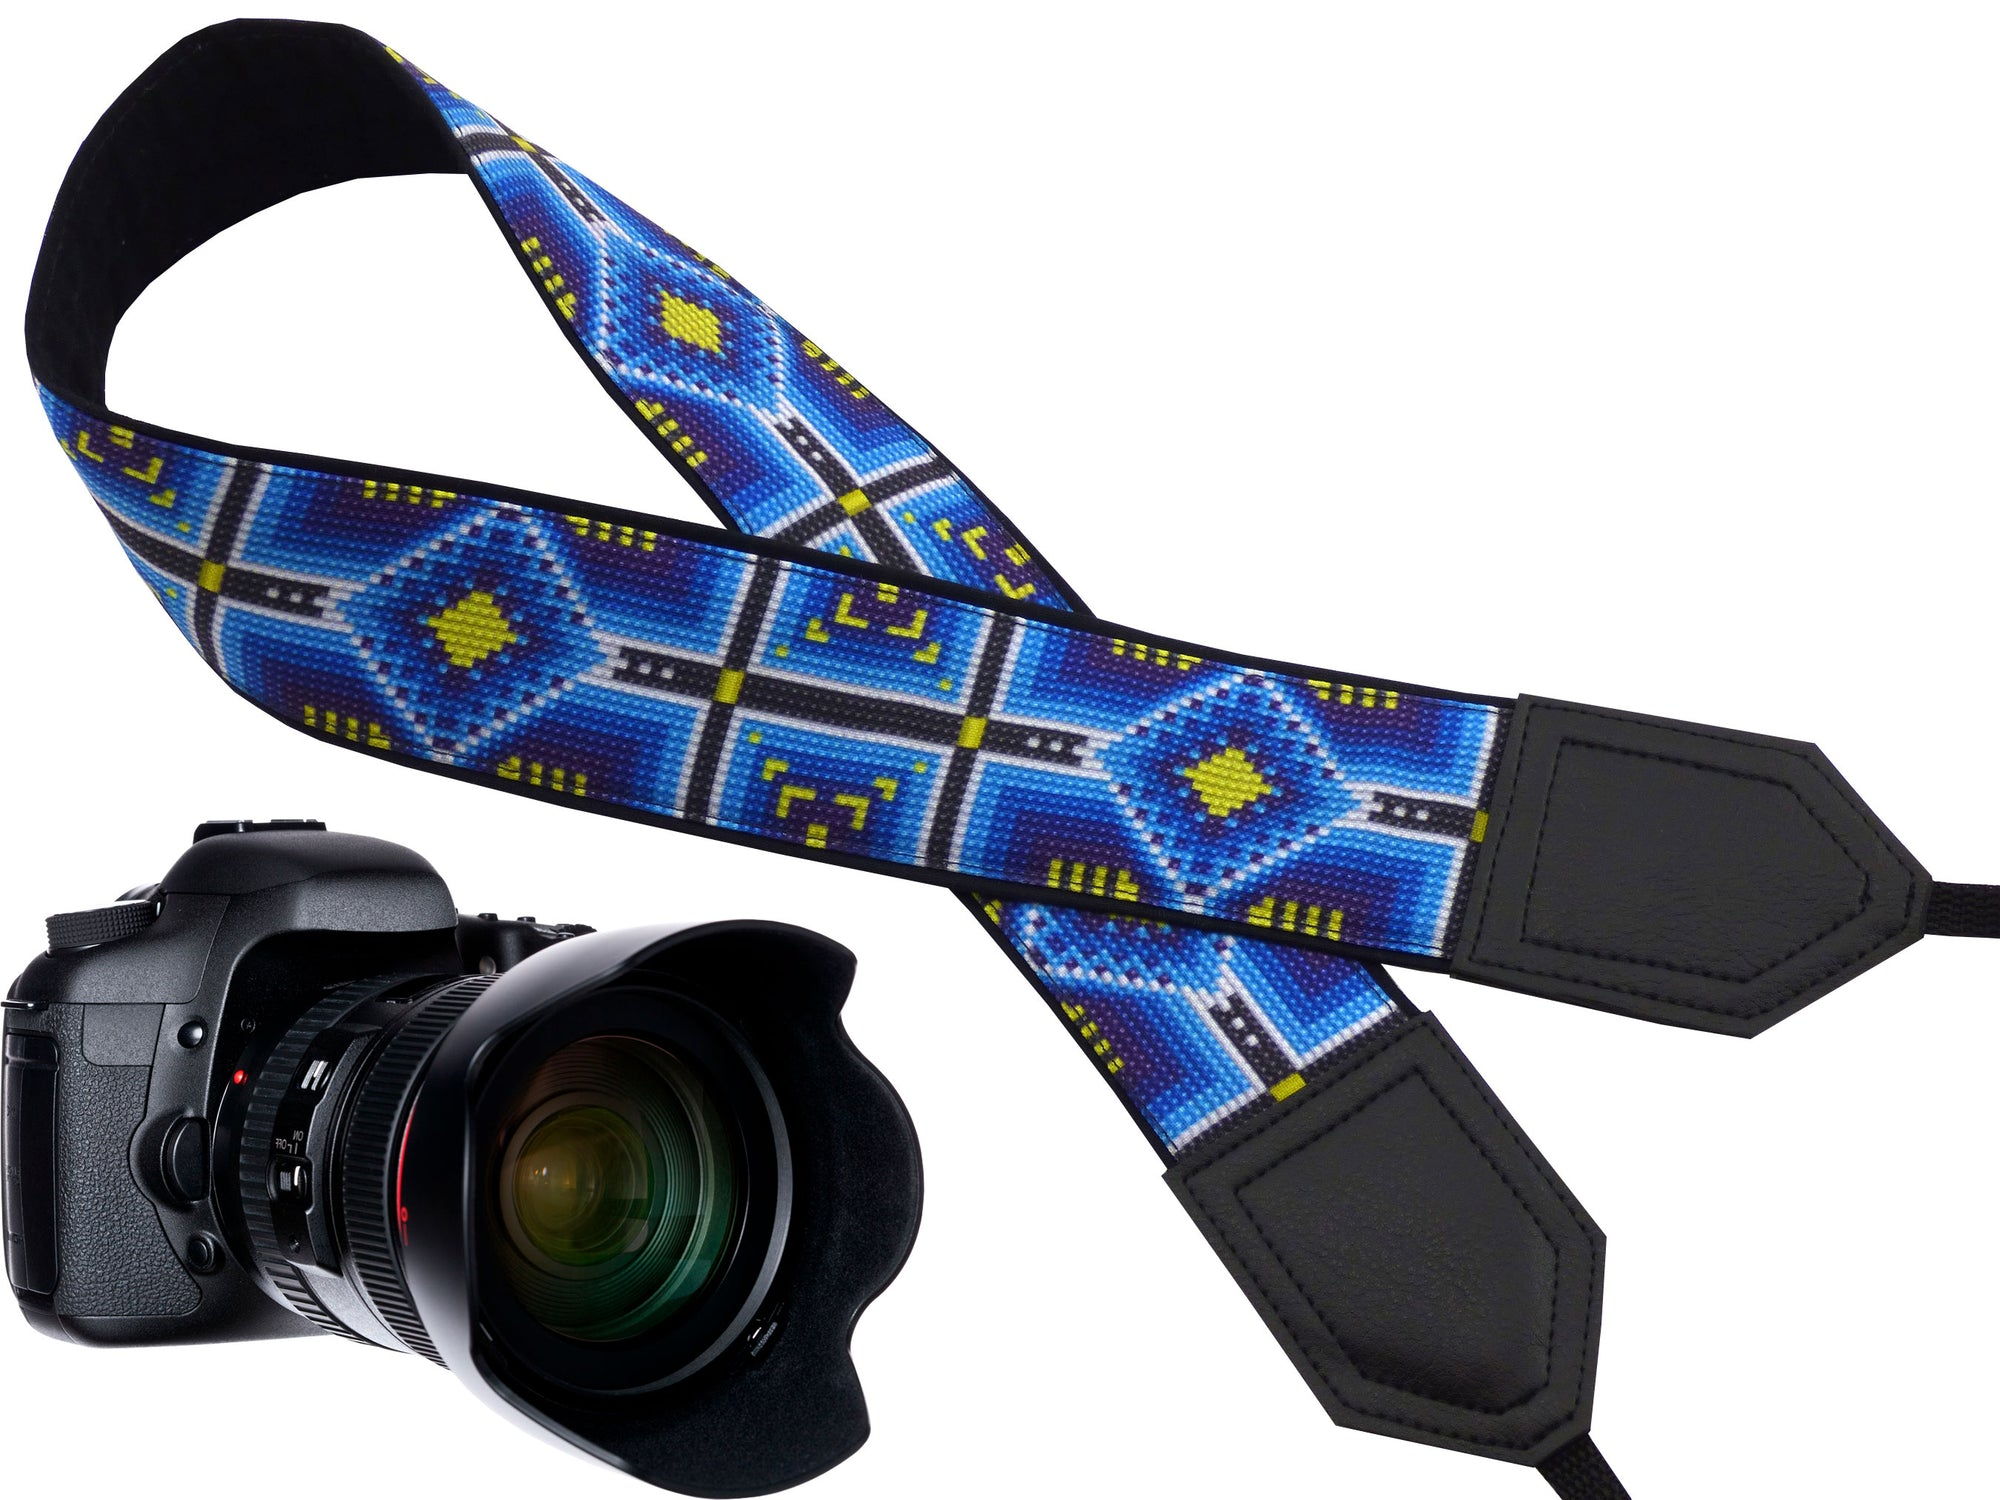 Monogram camera Strap. Personalized Blue Ethnic Camera strap. DSLR Camera Strap. Black Friday Sale. Camera accessories. Photographer gift